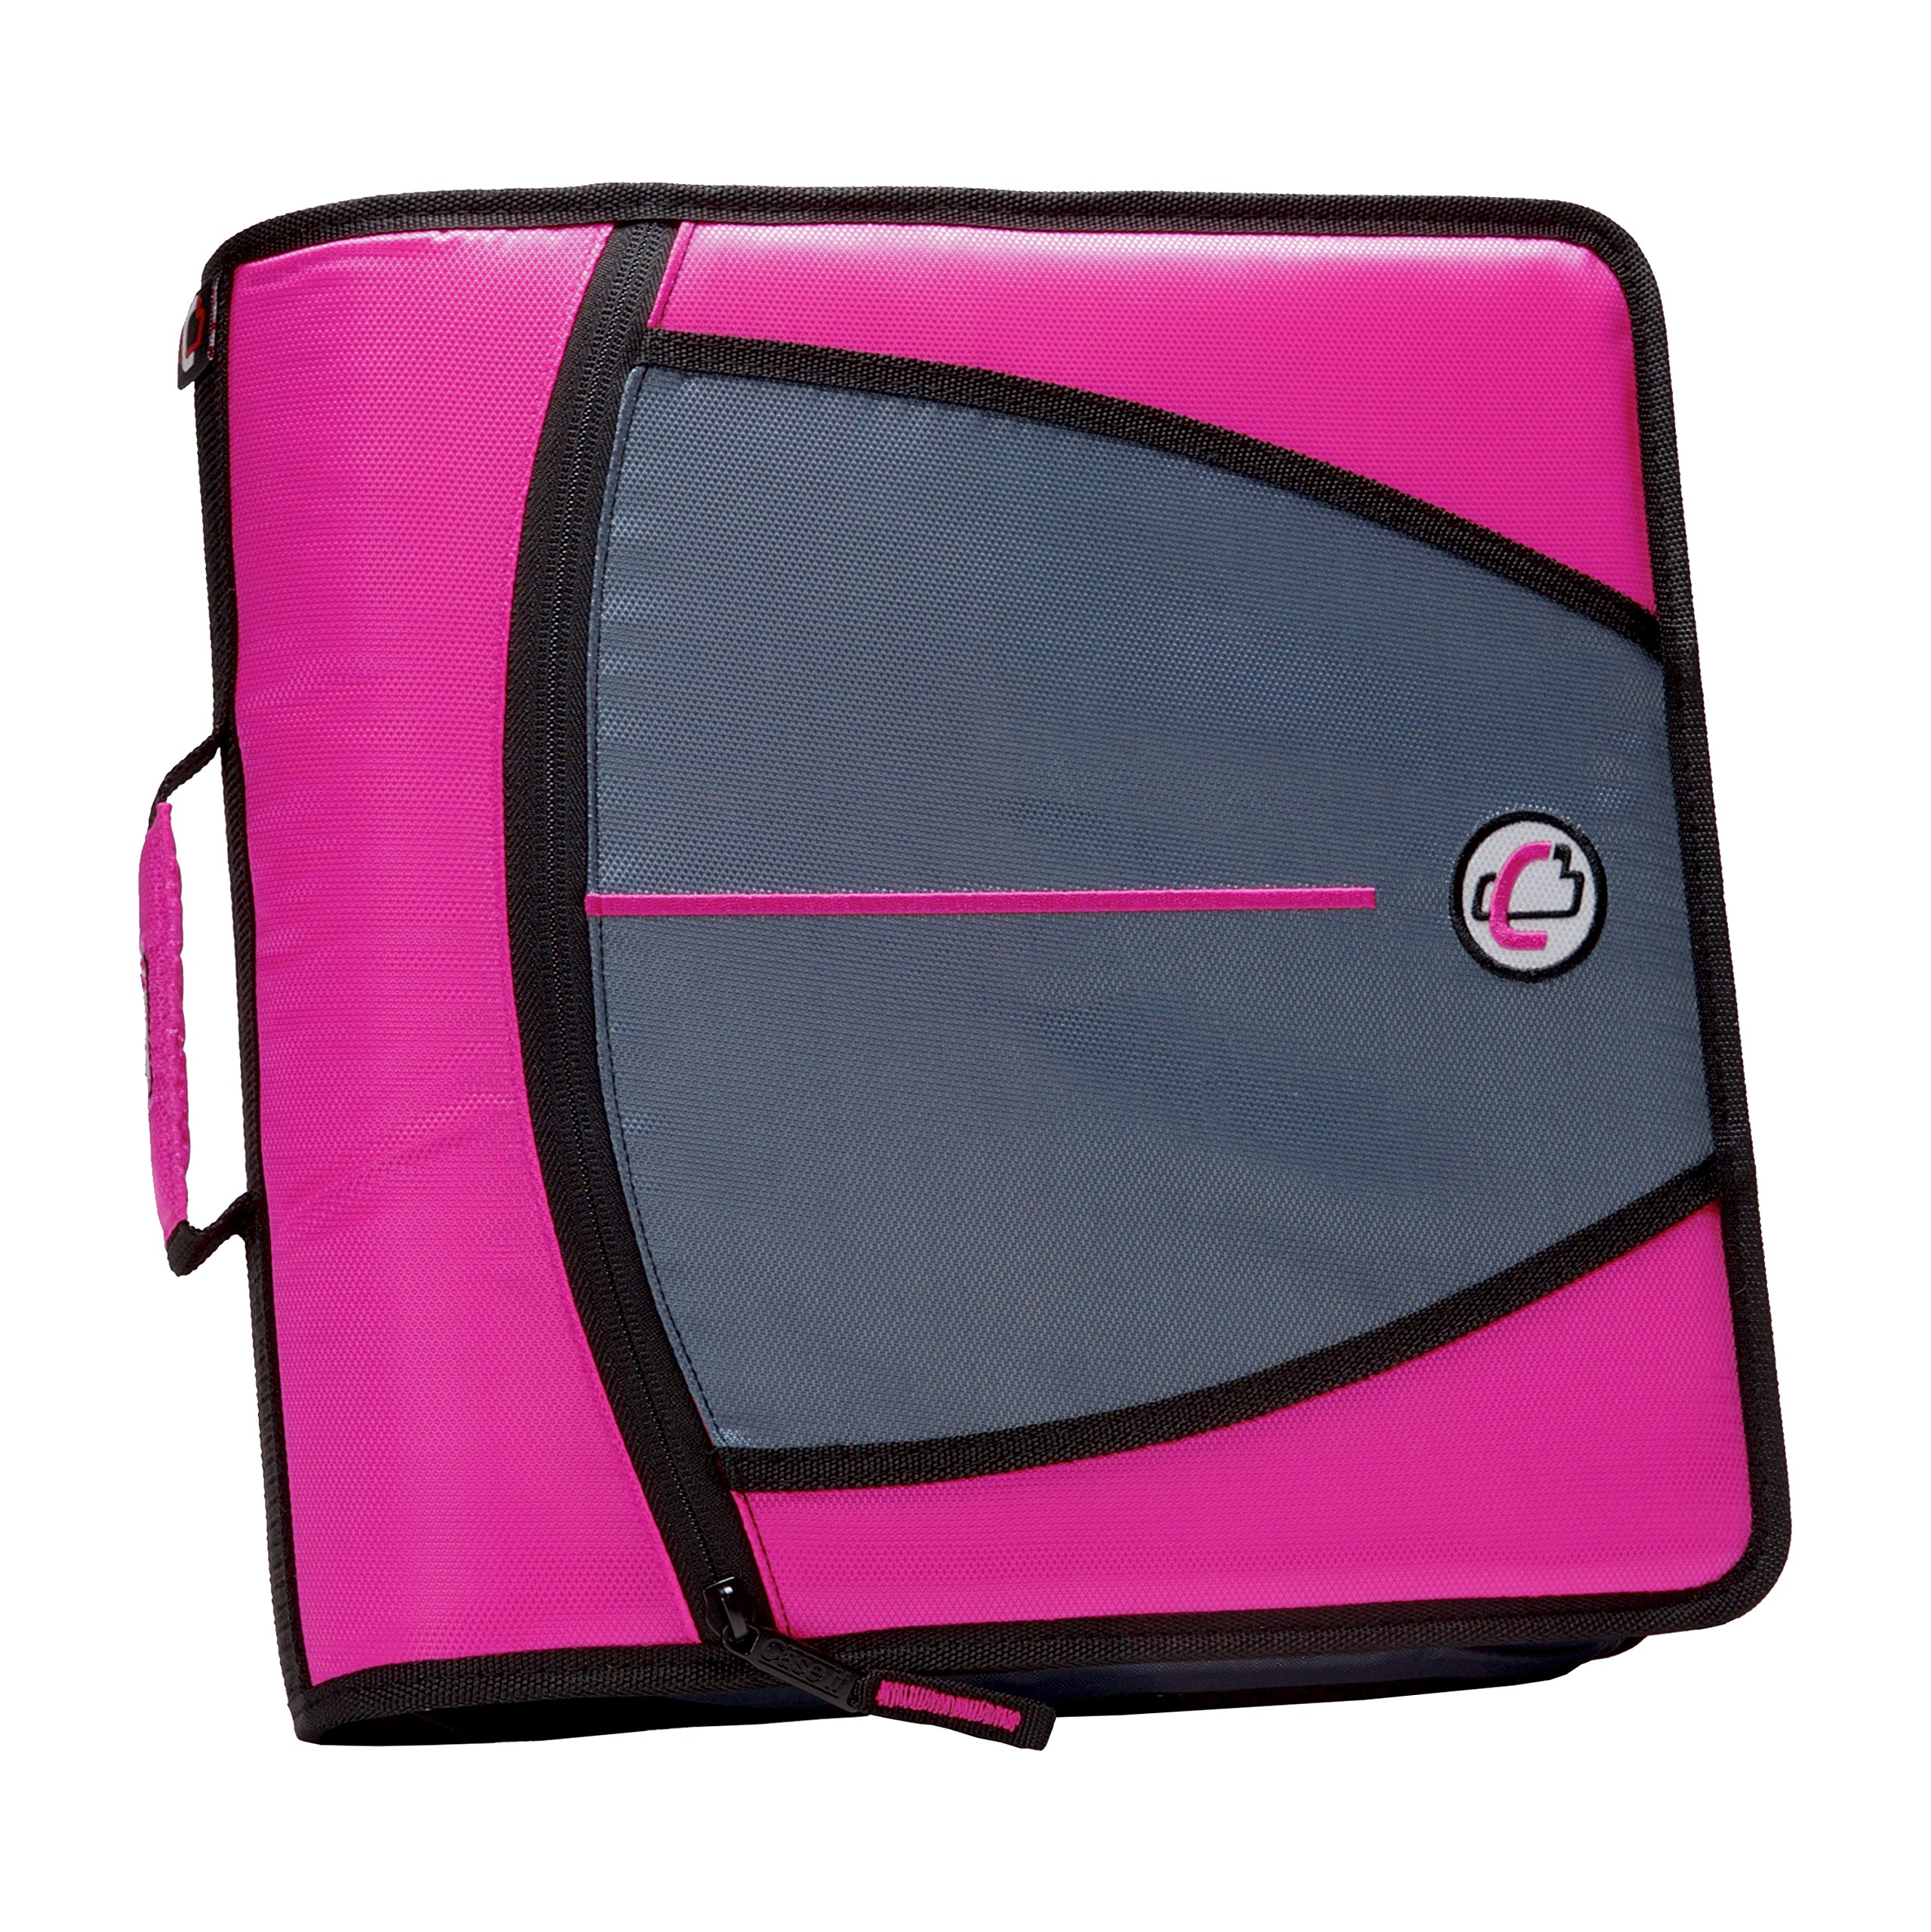 Case-it Mighty Zip Tab 3-Inch Zipper Binder, Magenta, D-146-MAG by Case it (Image #1)